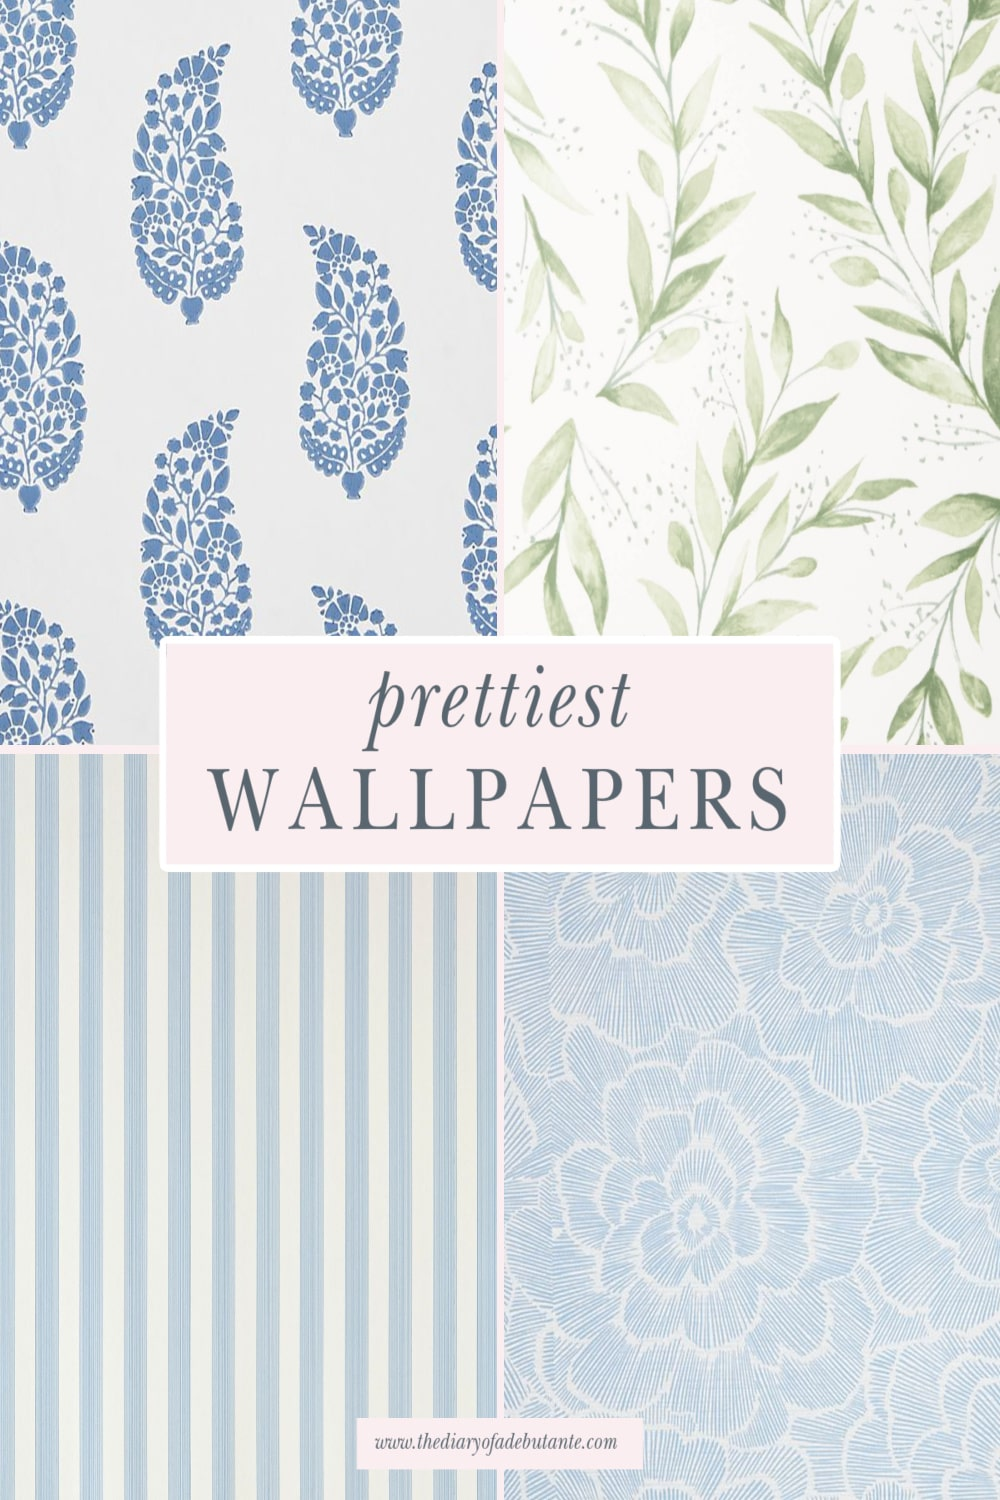 Living room wallpaper ideas by blogger Stephanie Ziajka on Diary of a Debutante